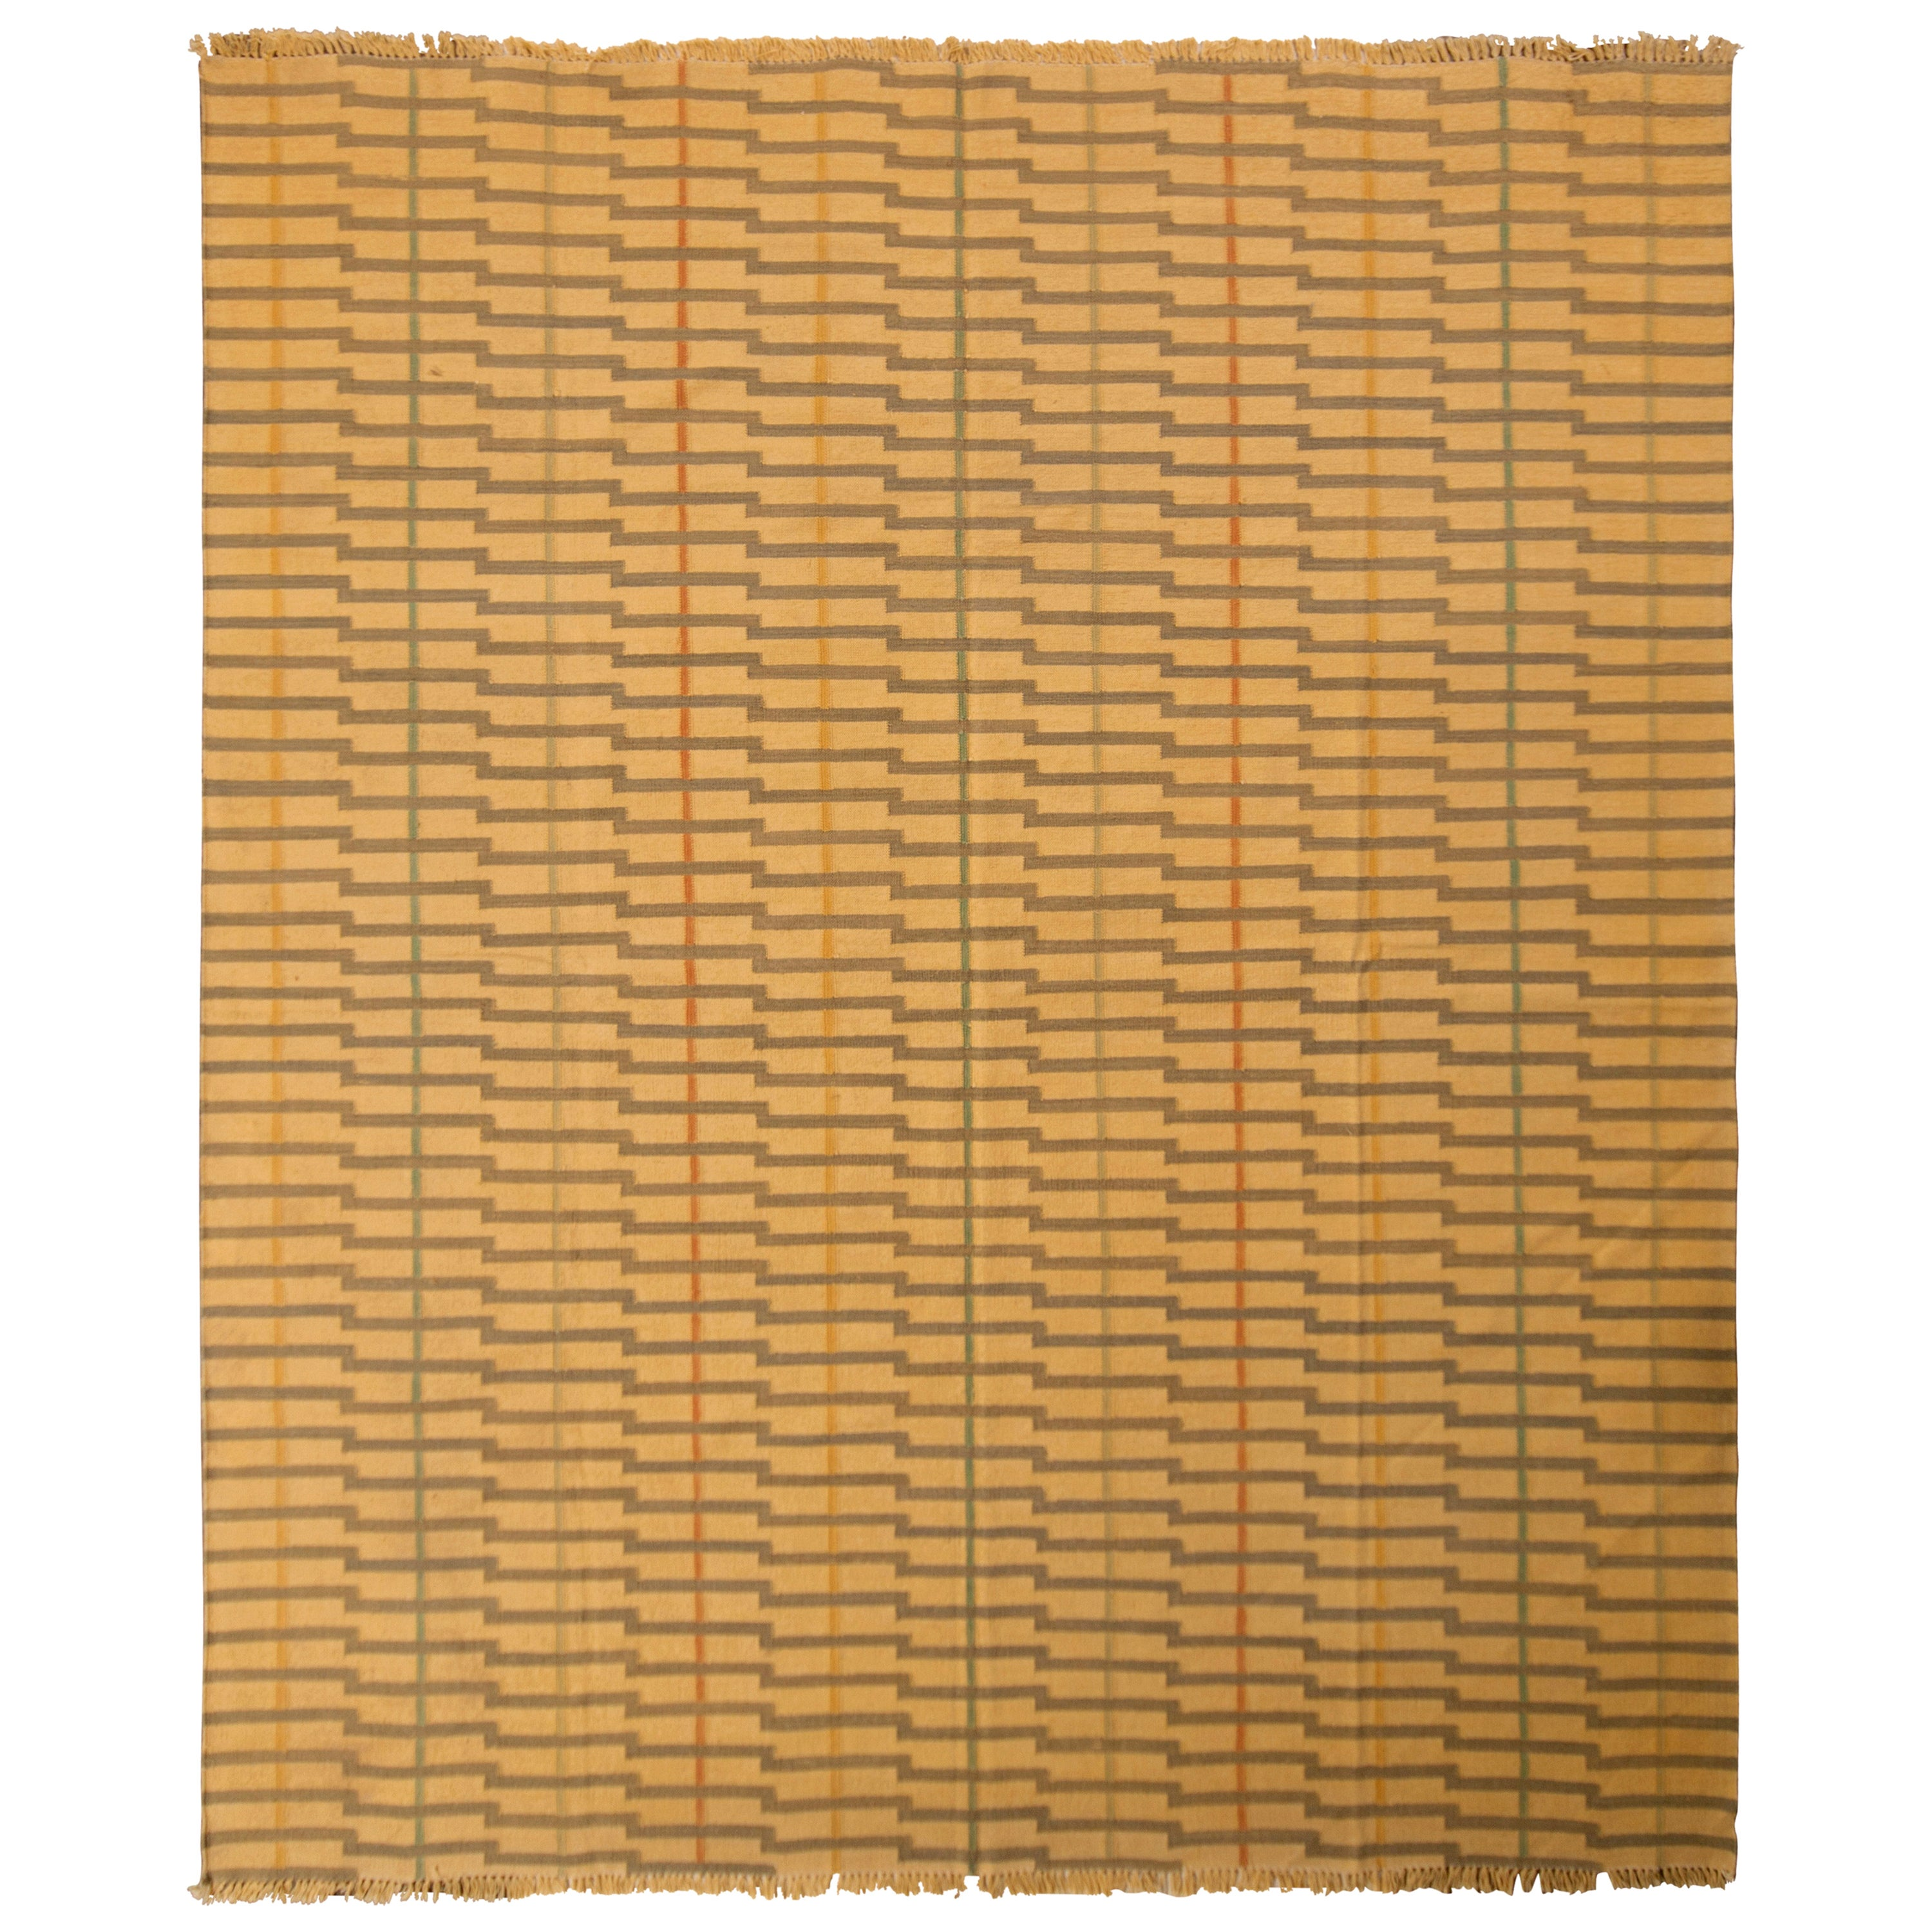 Contemporary Striped Flat-Weave Beige Brown Pattern by Rug & Kilim